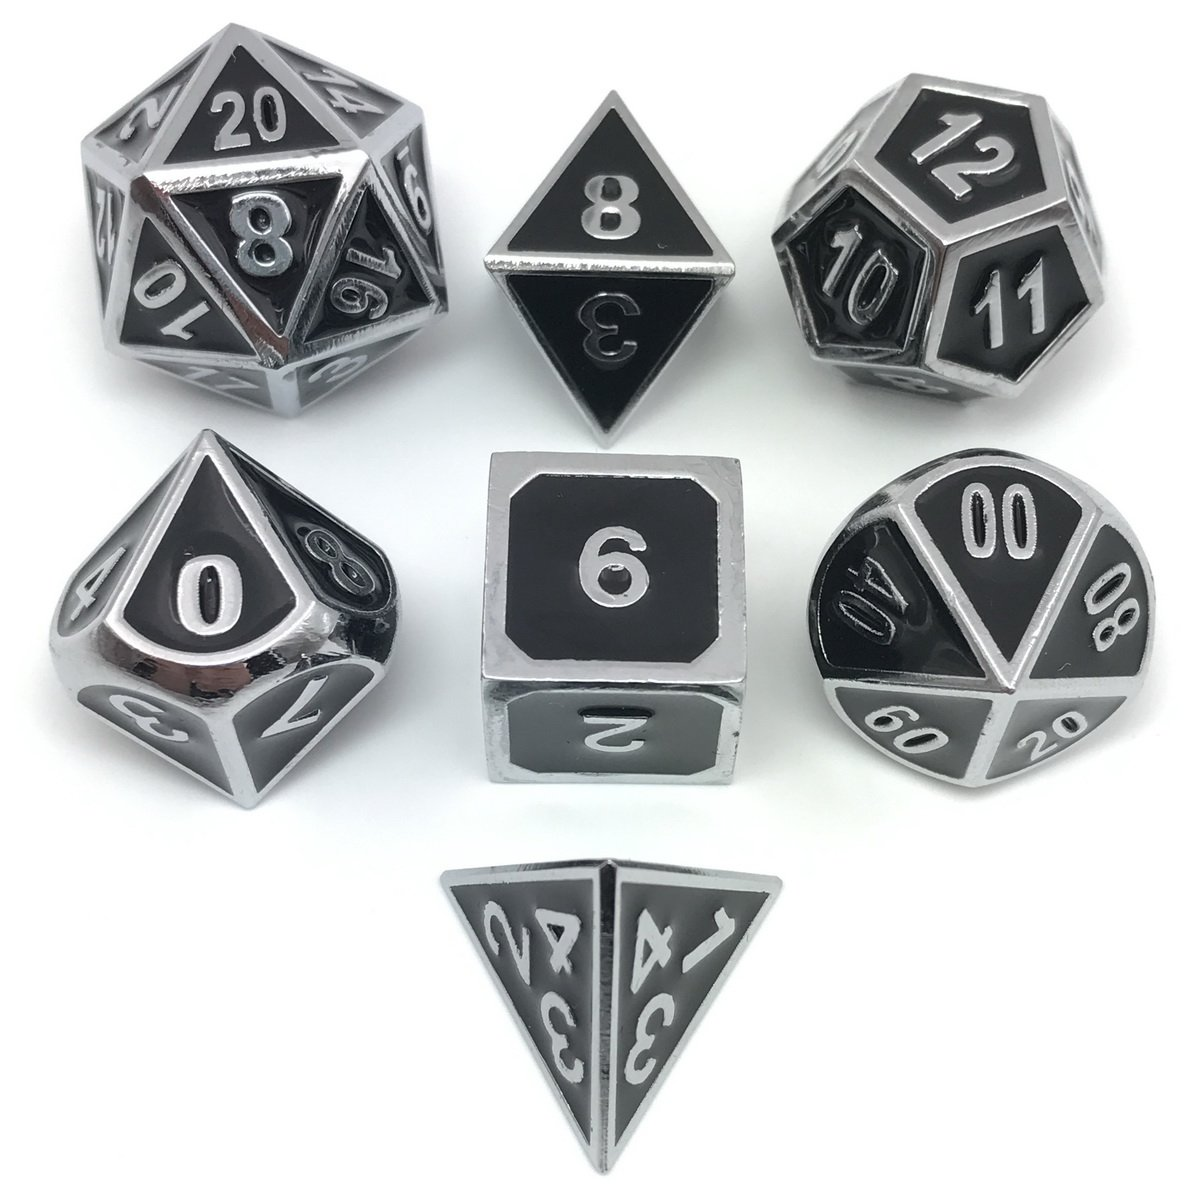 Set of Solid Metal Dice-Shiny Silver with Black Enamel-DnD Dice Set-Polyhedral Dice Set-RPG Dice Set